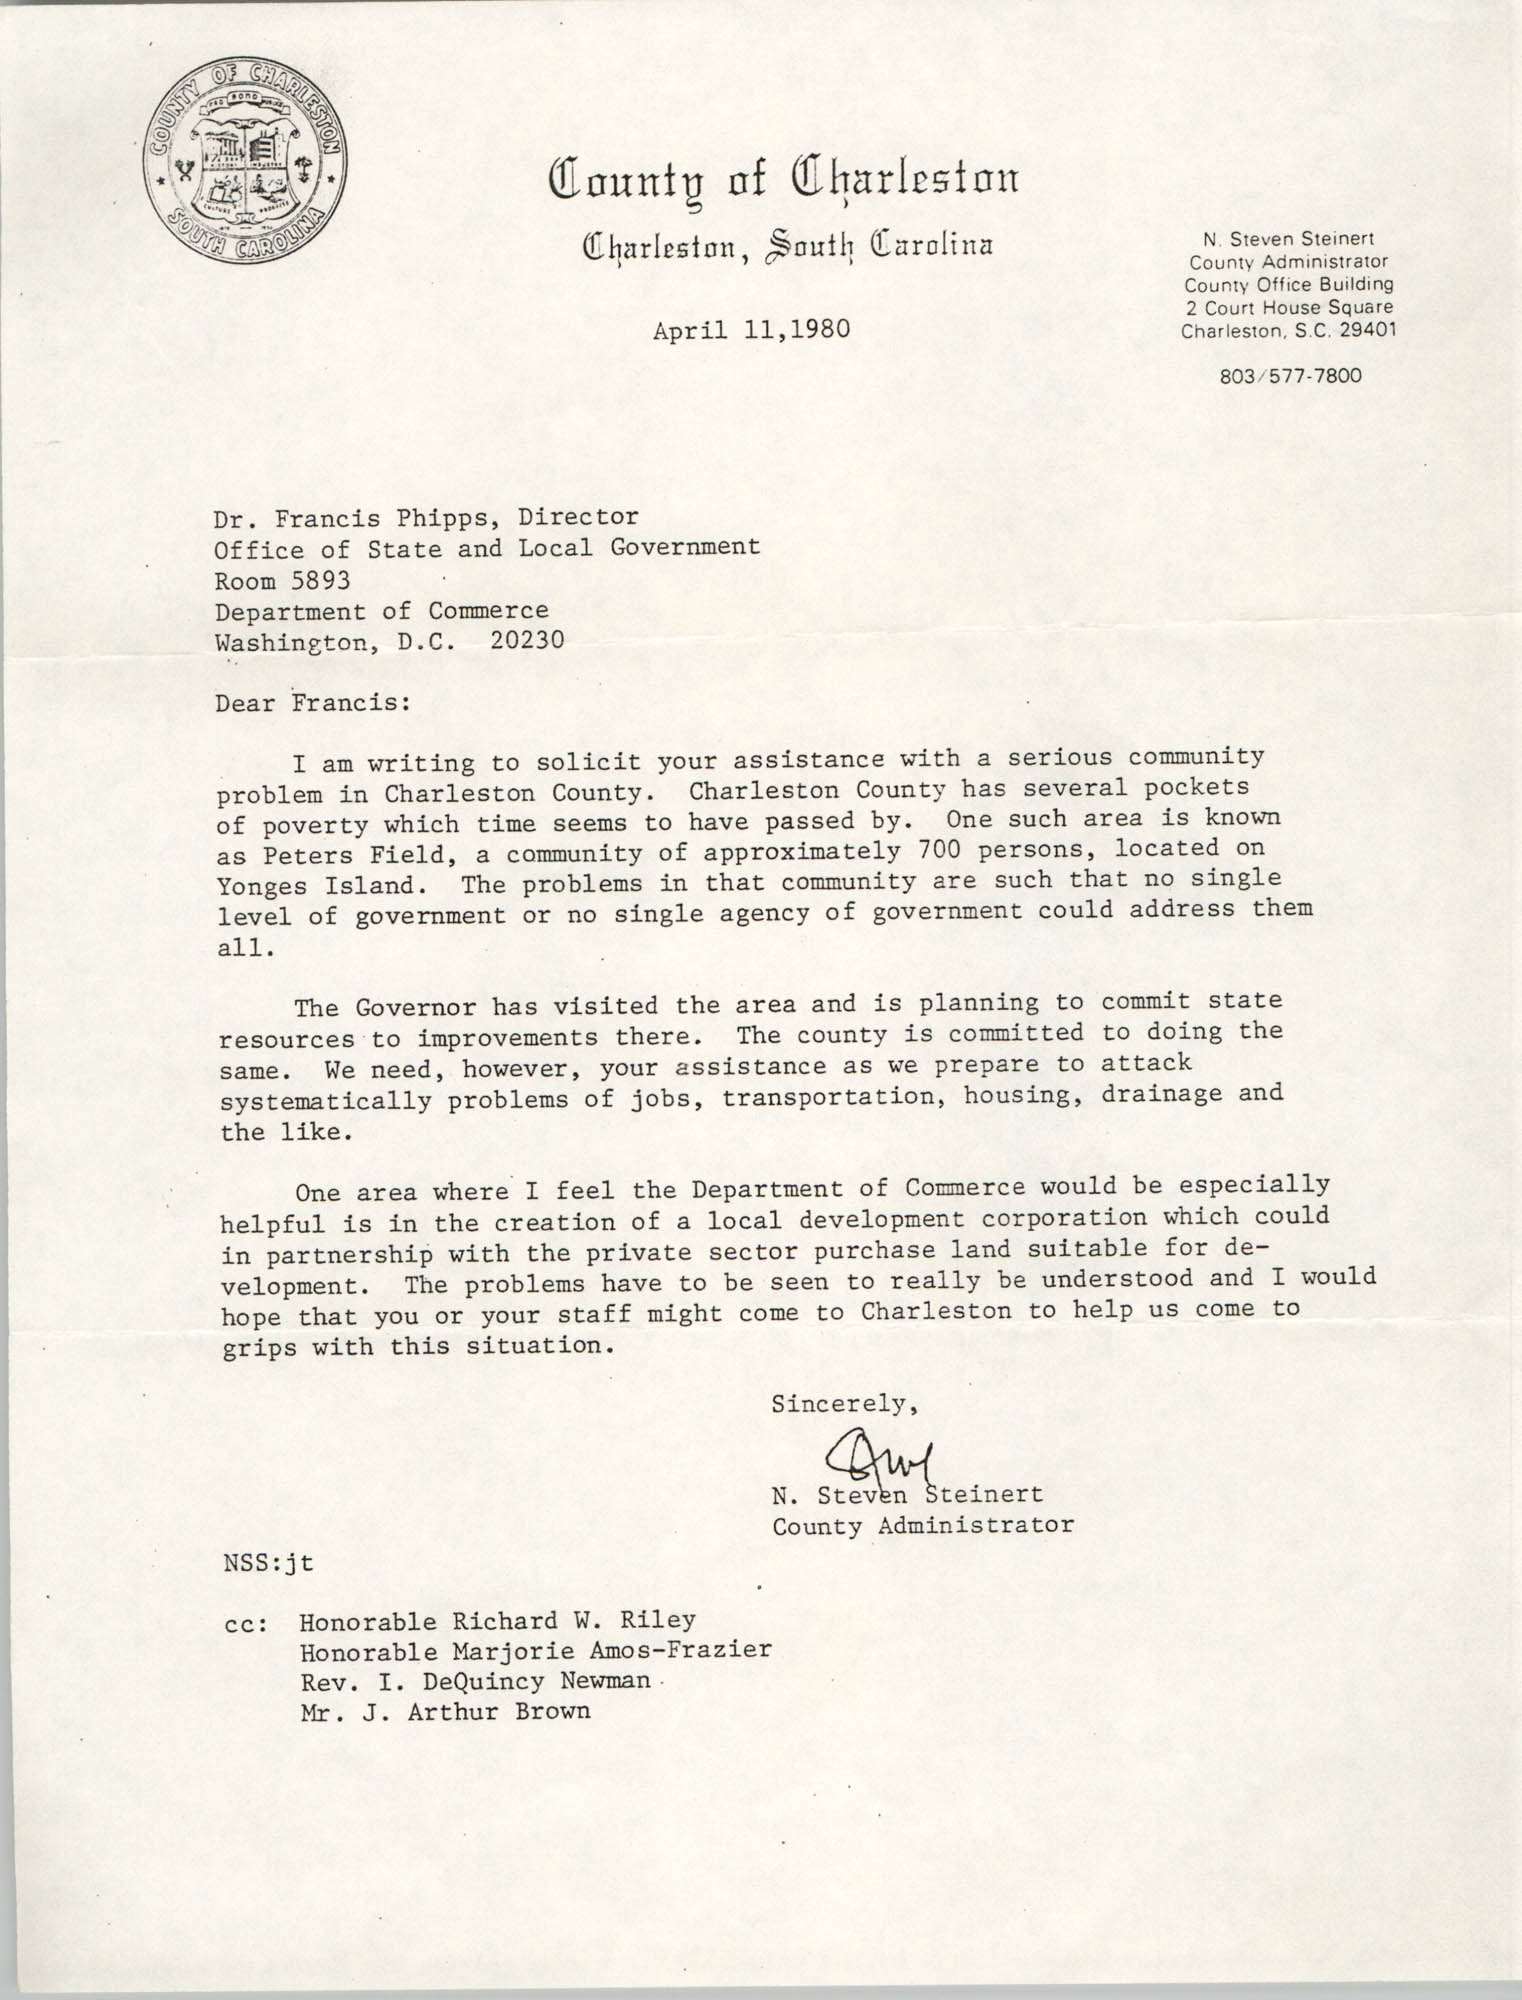 Letter from N. Steven Steinert to Francis Phipps, April 11, 1980